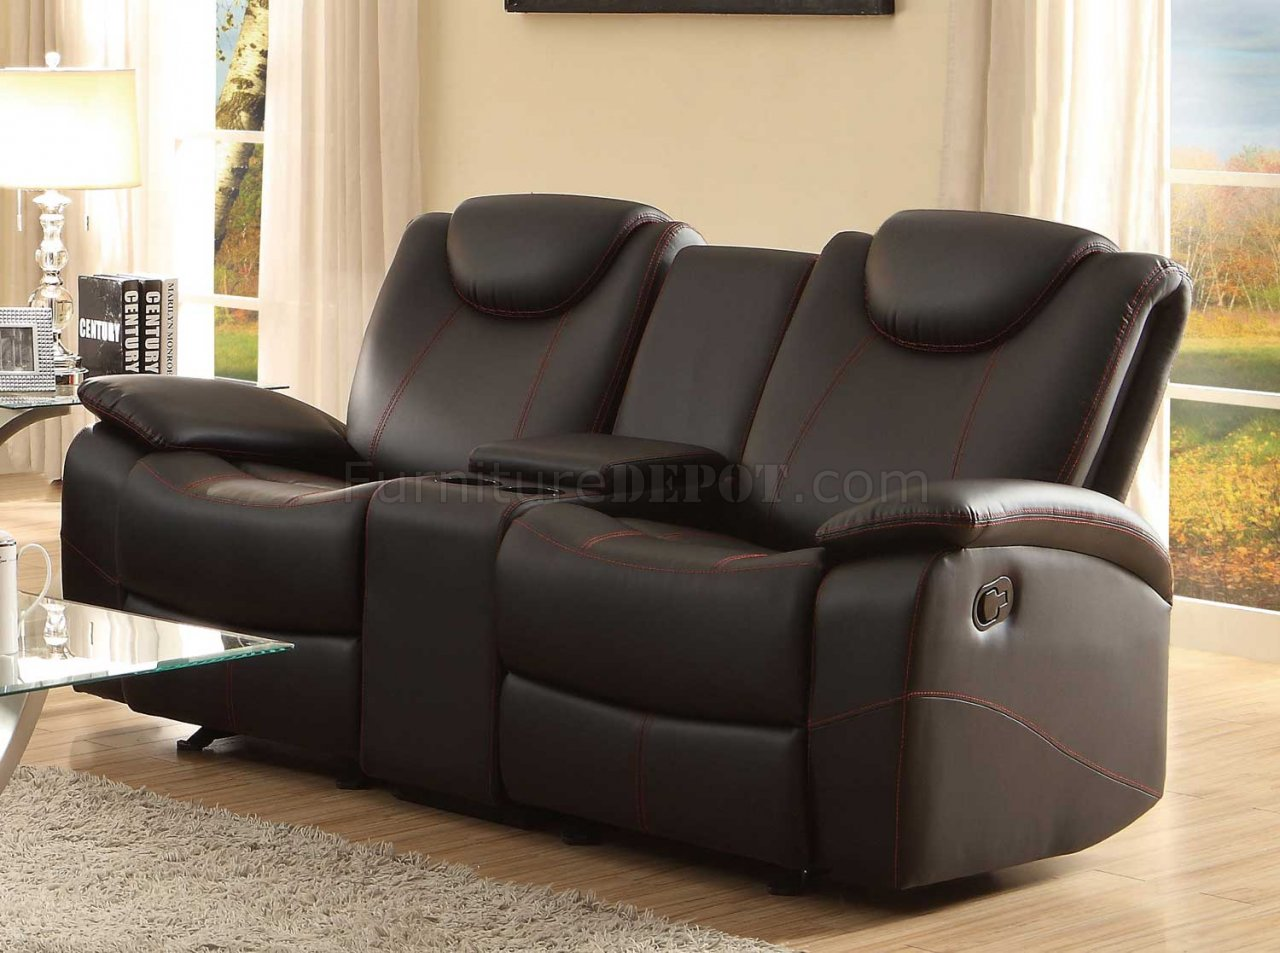 recliner sofa set 3 2 1 storage beds uk talbot motion 8524bk in black by homelegance w/options